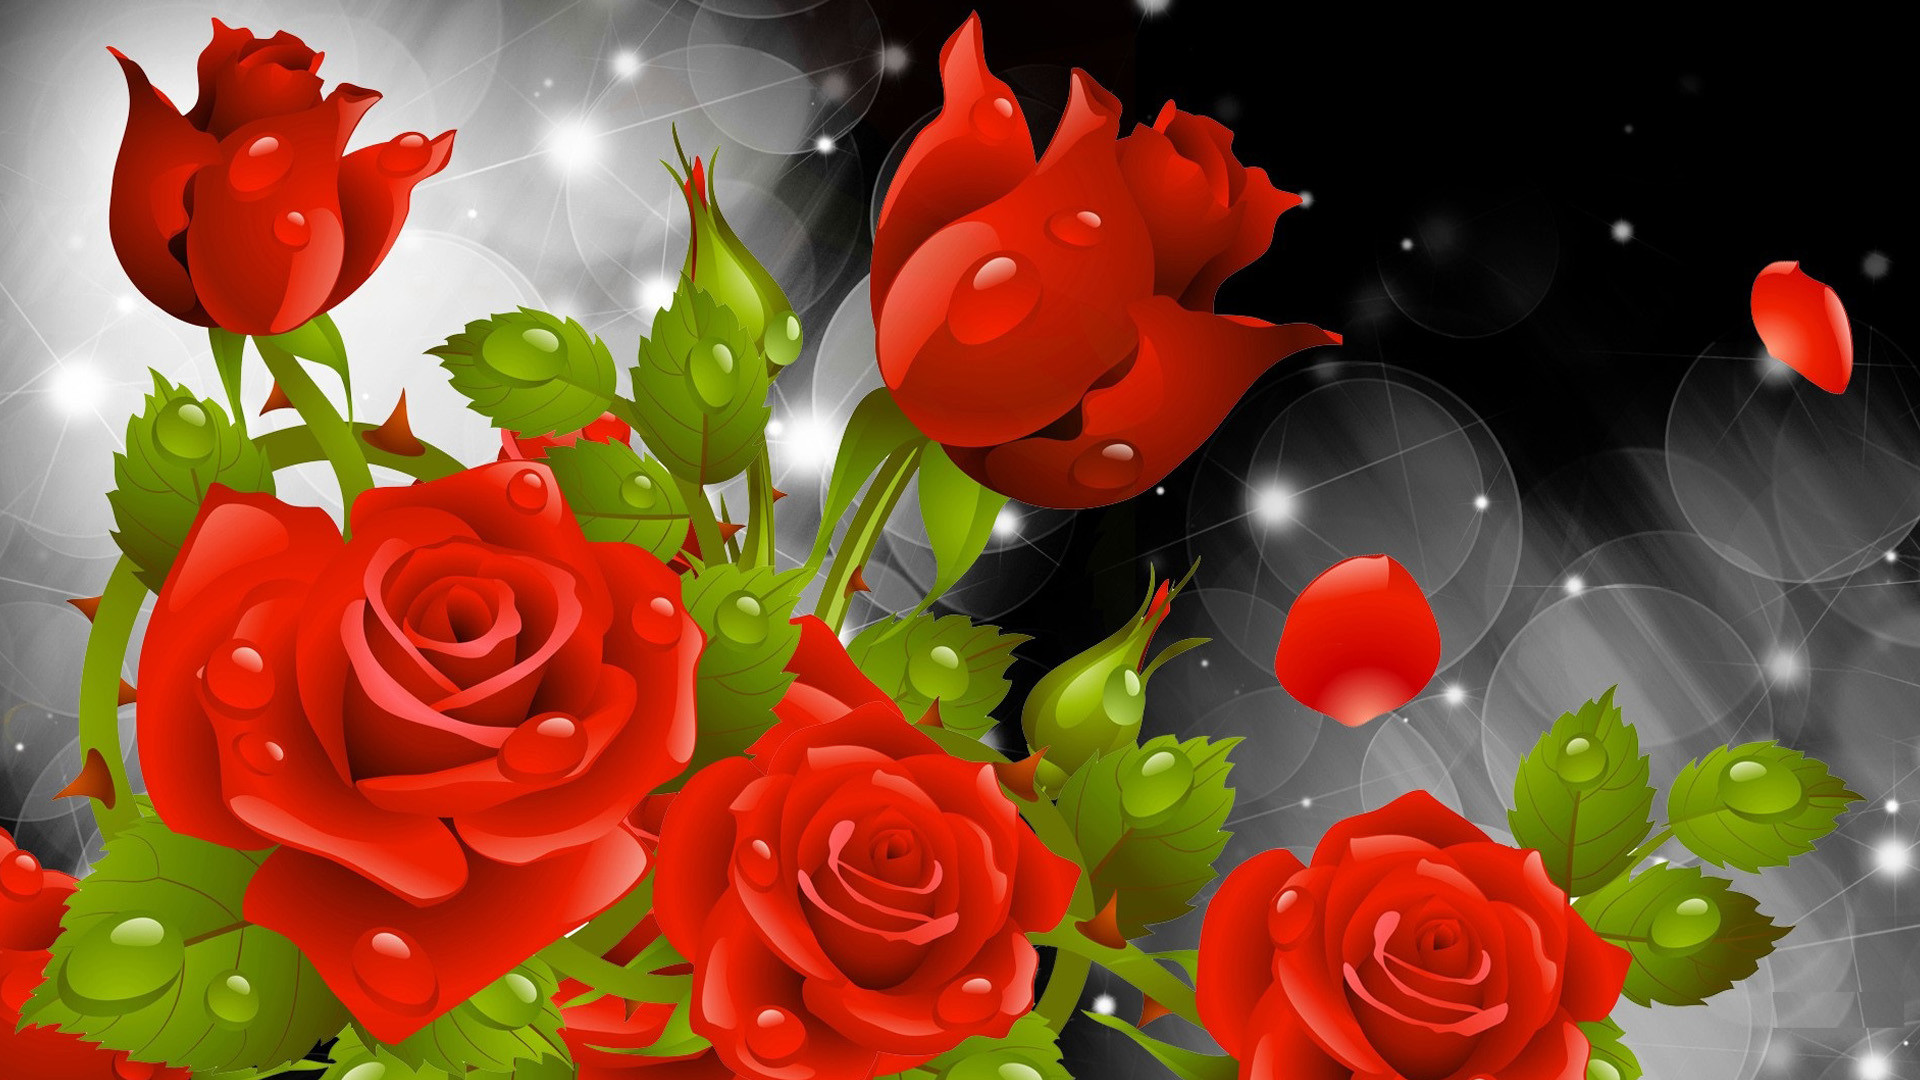 Red Rose Wallpaper 72 Images